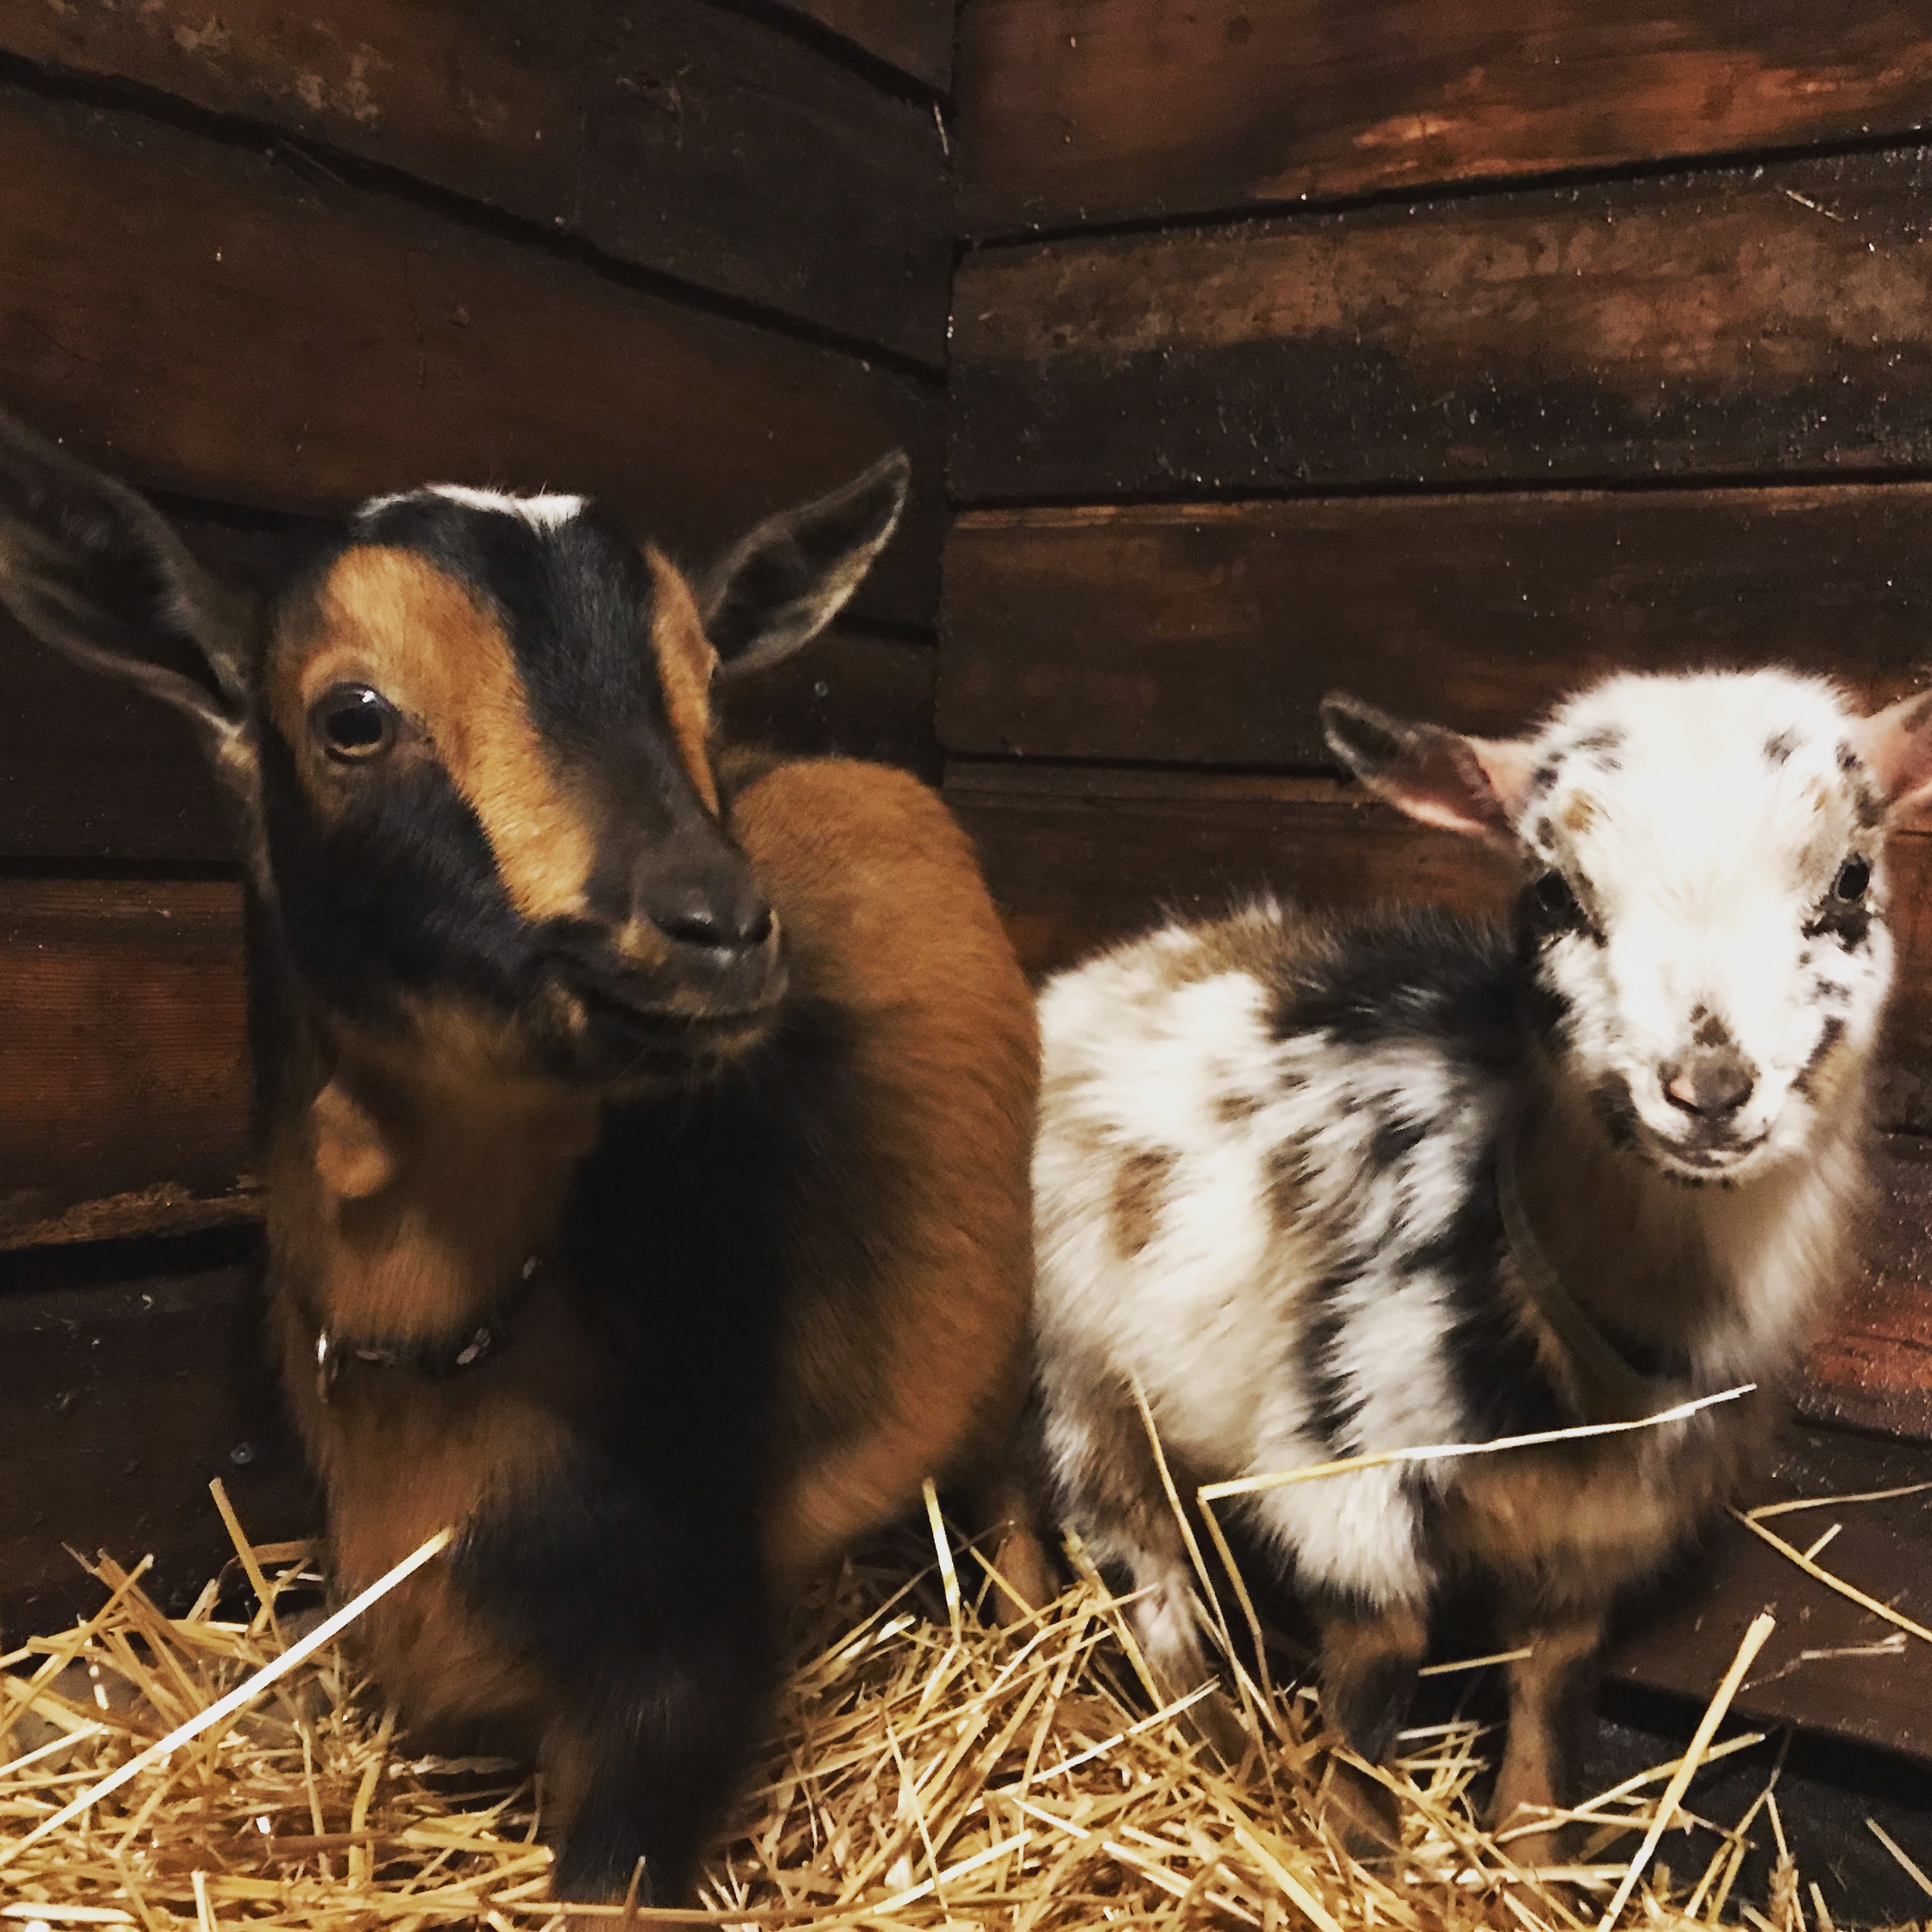 Mini goats inside the barn